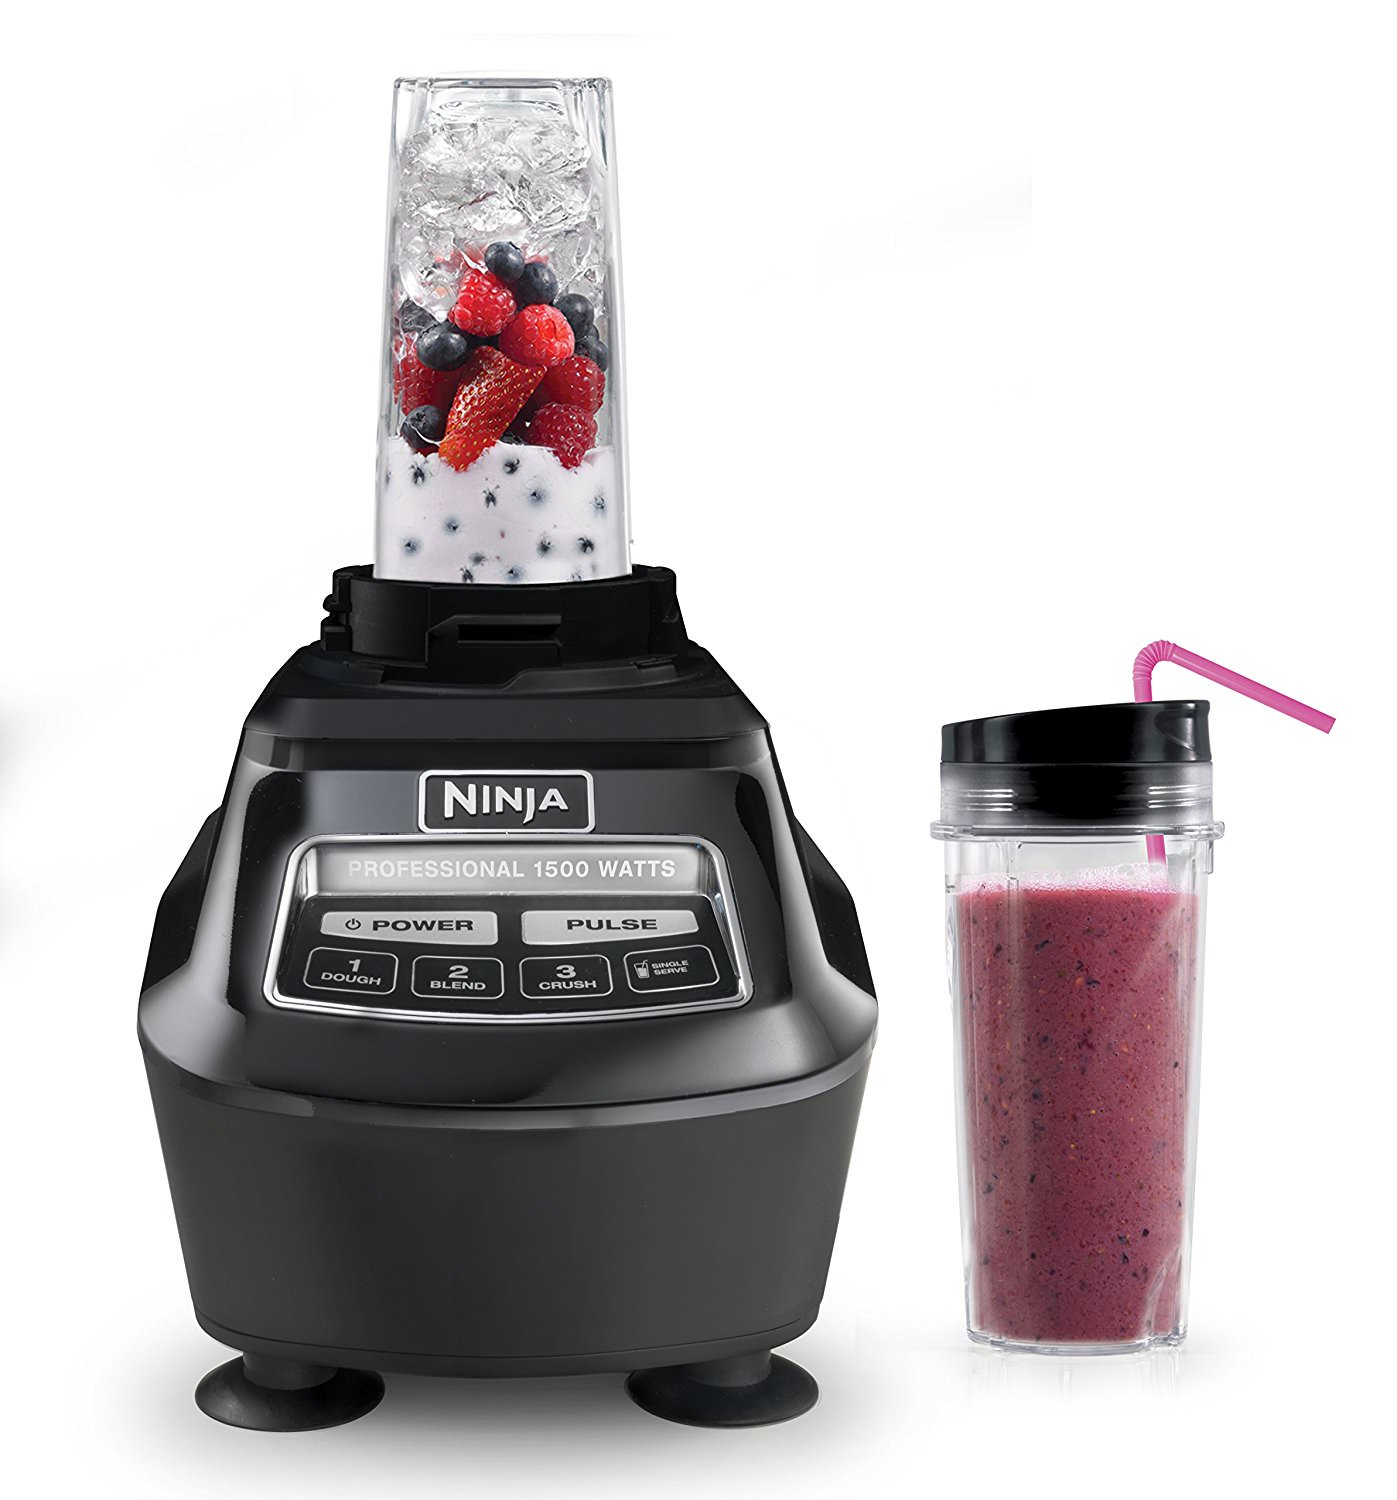 walmart ninja mega kitchen system chairs on rollers 1500 8 cup blender reviews